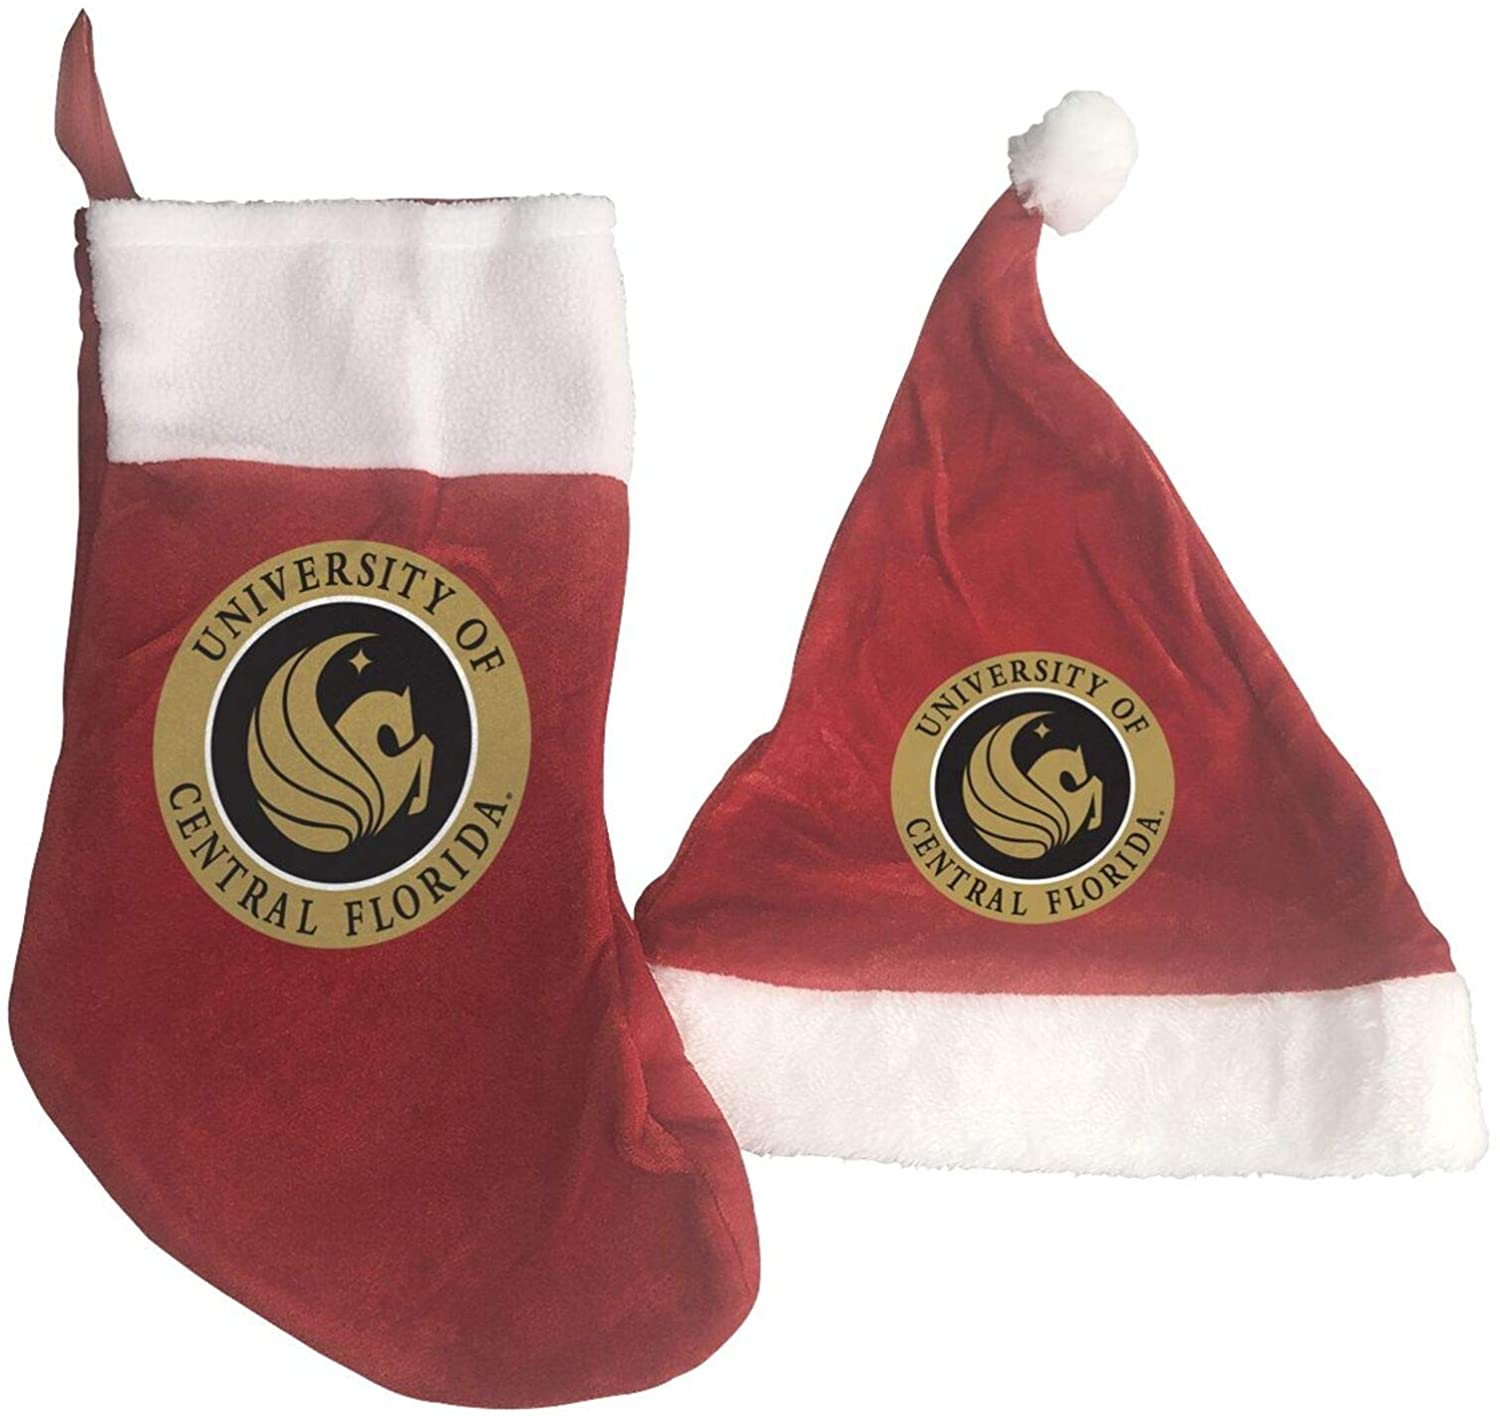 GLleaf University of Central Florida Christmas Hat and Christmas Stocking Santa Socks Red Fireplace Hanging Stockings for Ornaments Family Holiday Xmas Party Decorations